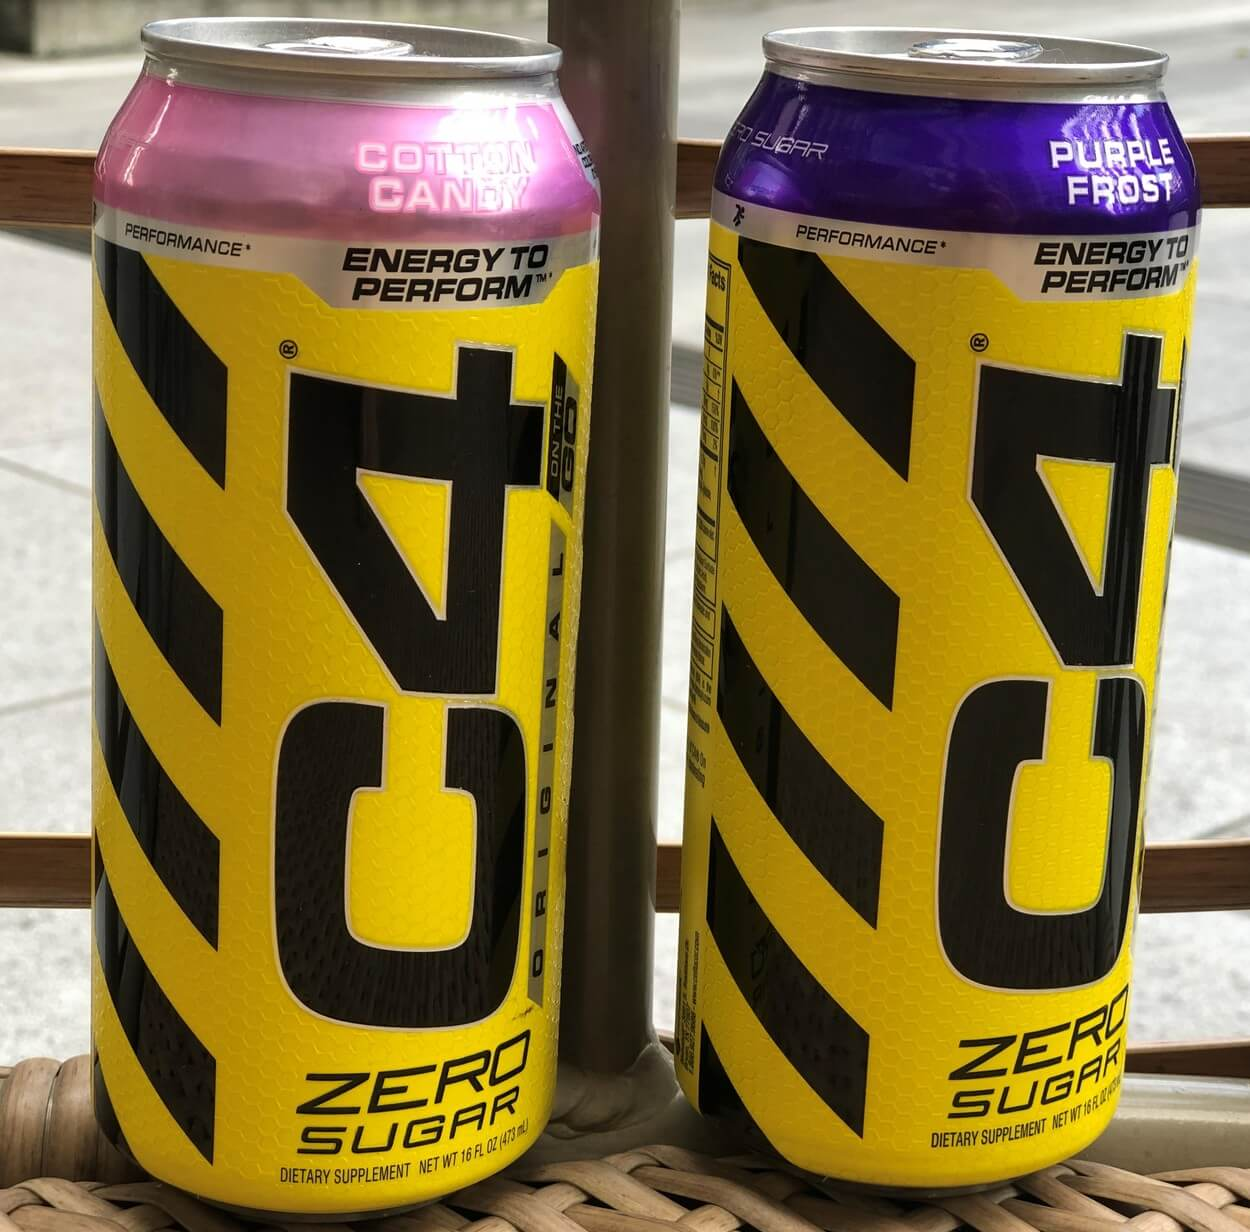 C4 Energy Drink Nutrition Facts (Analysis)